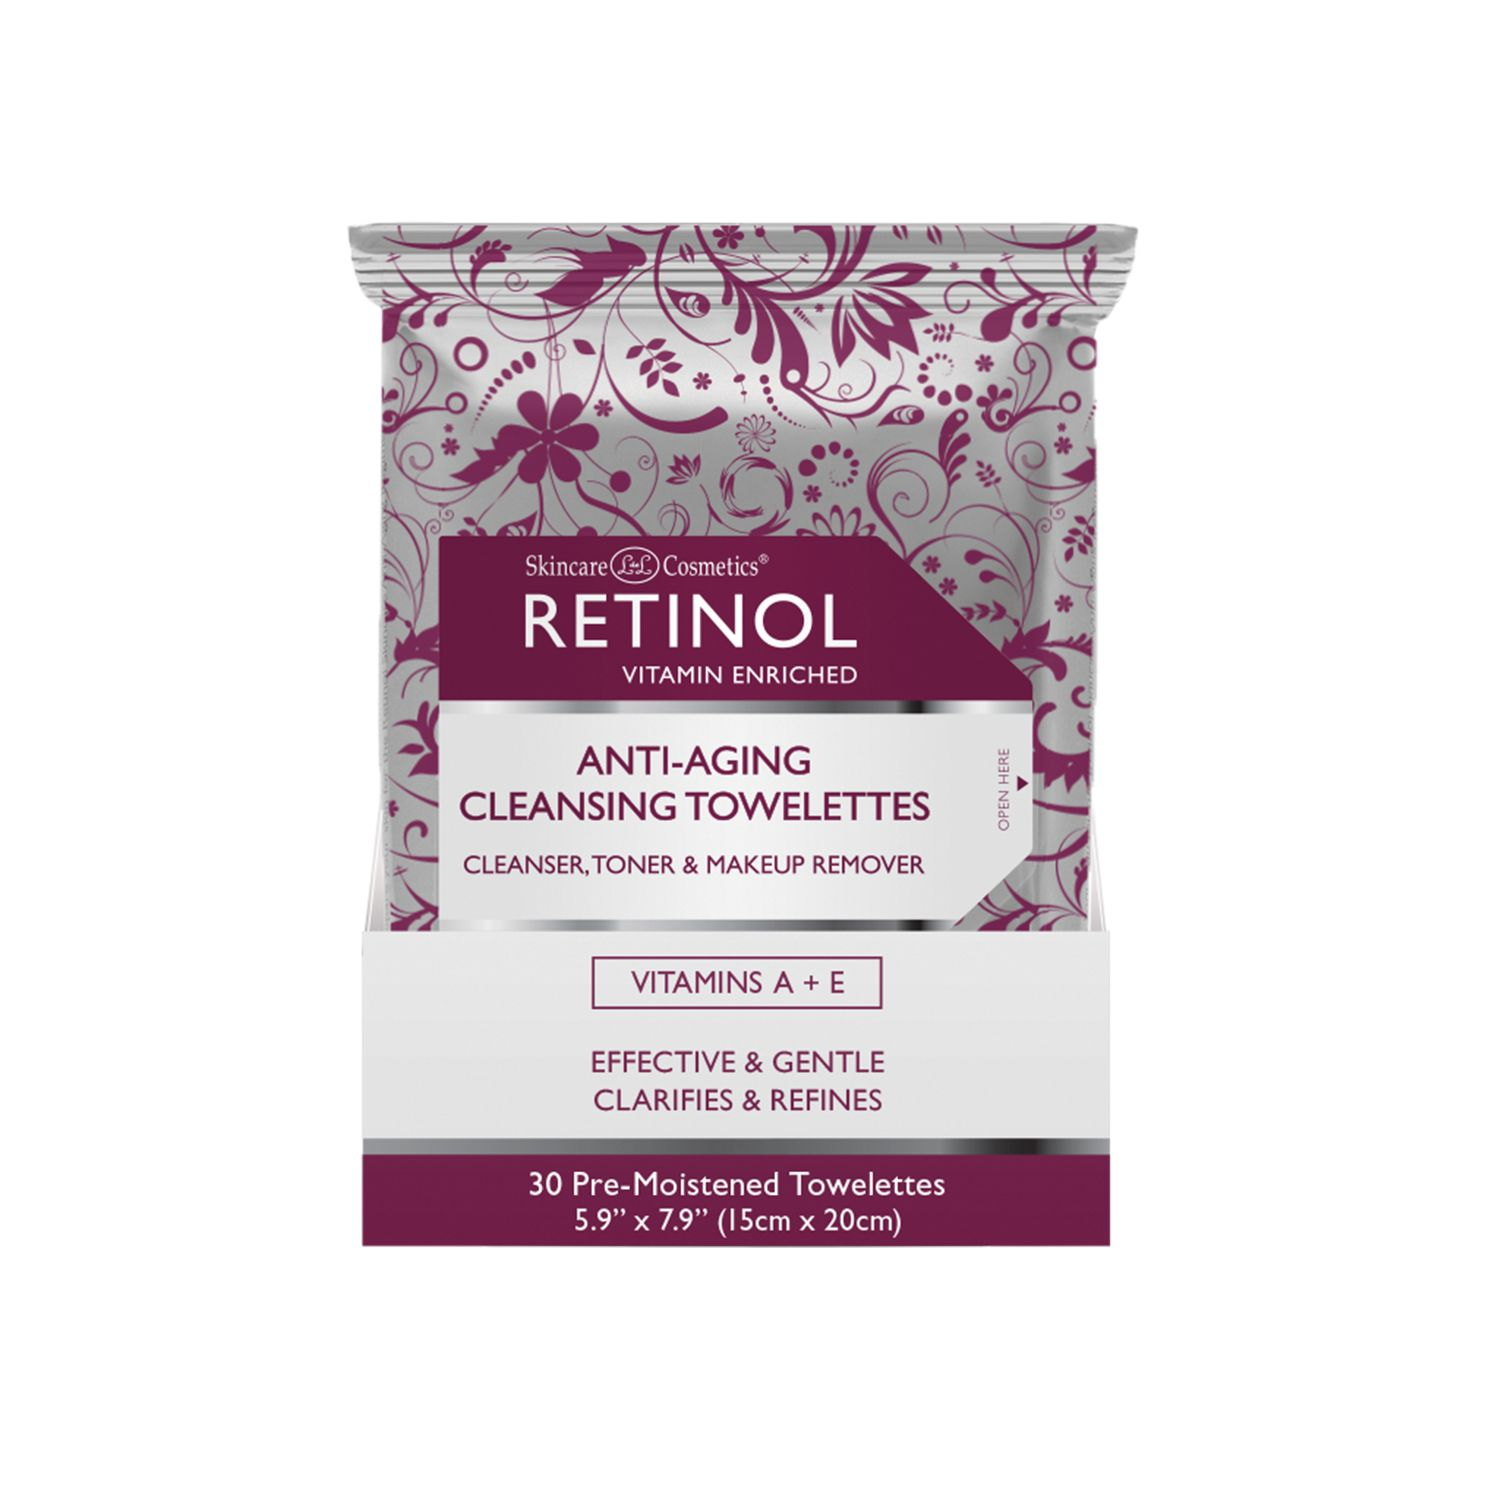 Retinol Anti-aging Cleansing Towelettes, 30 Ct Activating Cream 1.7oz